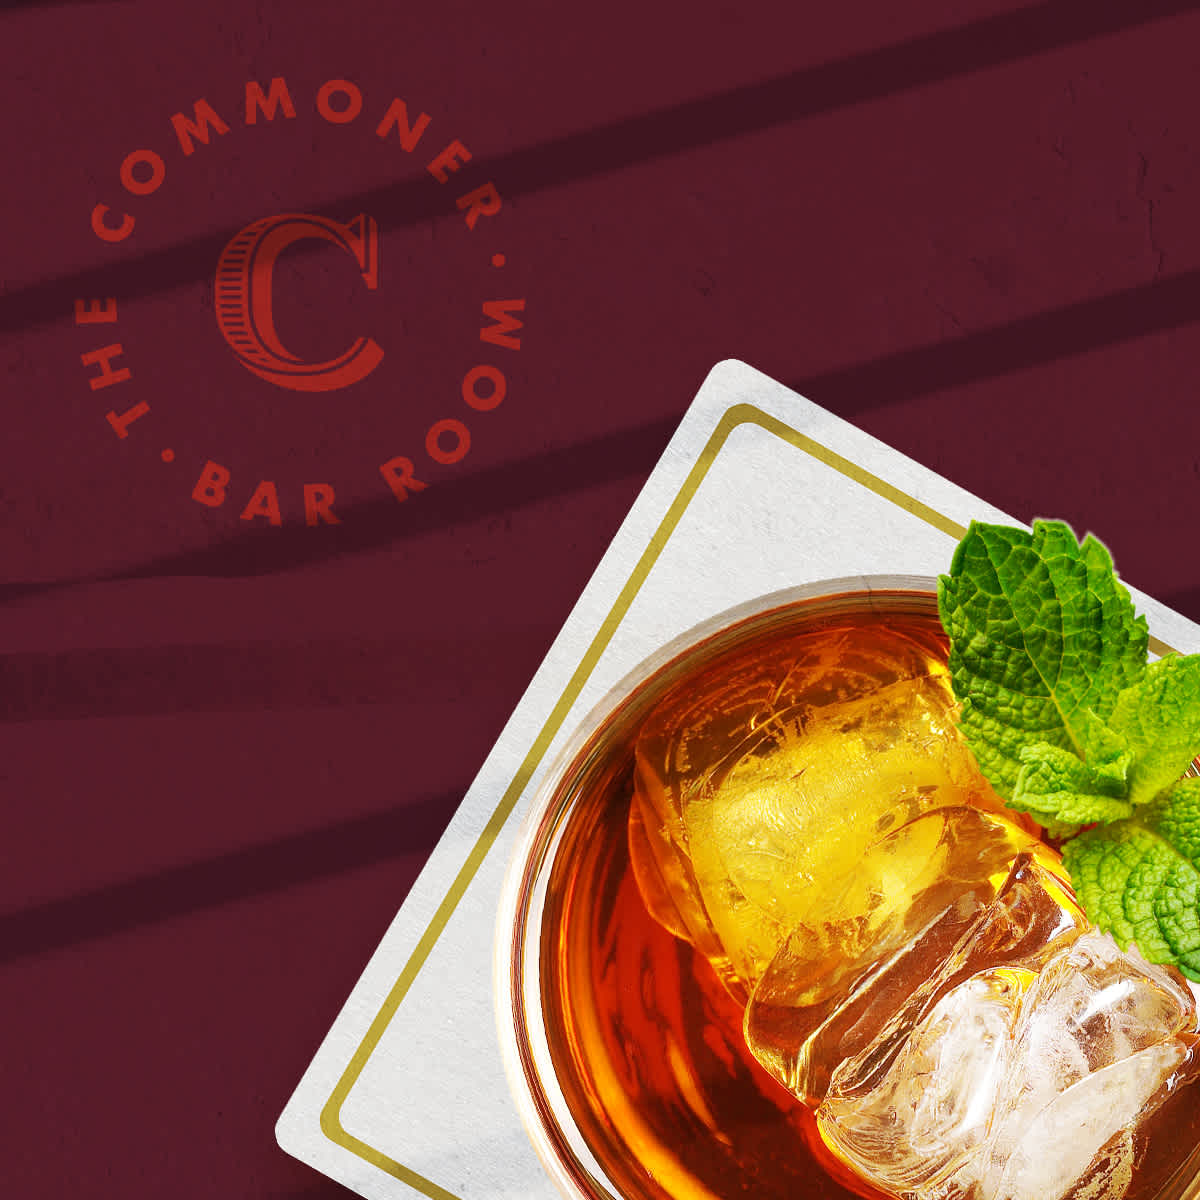 5. commoner-bar-room-square